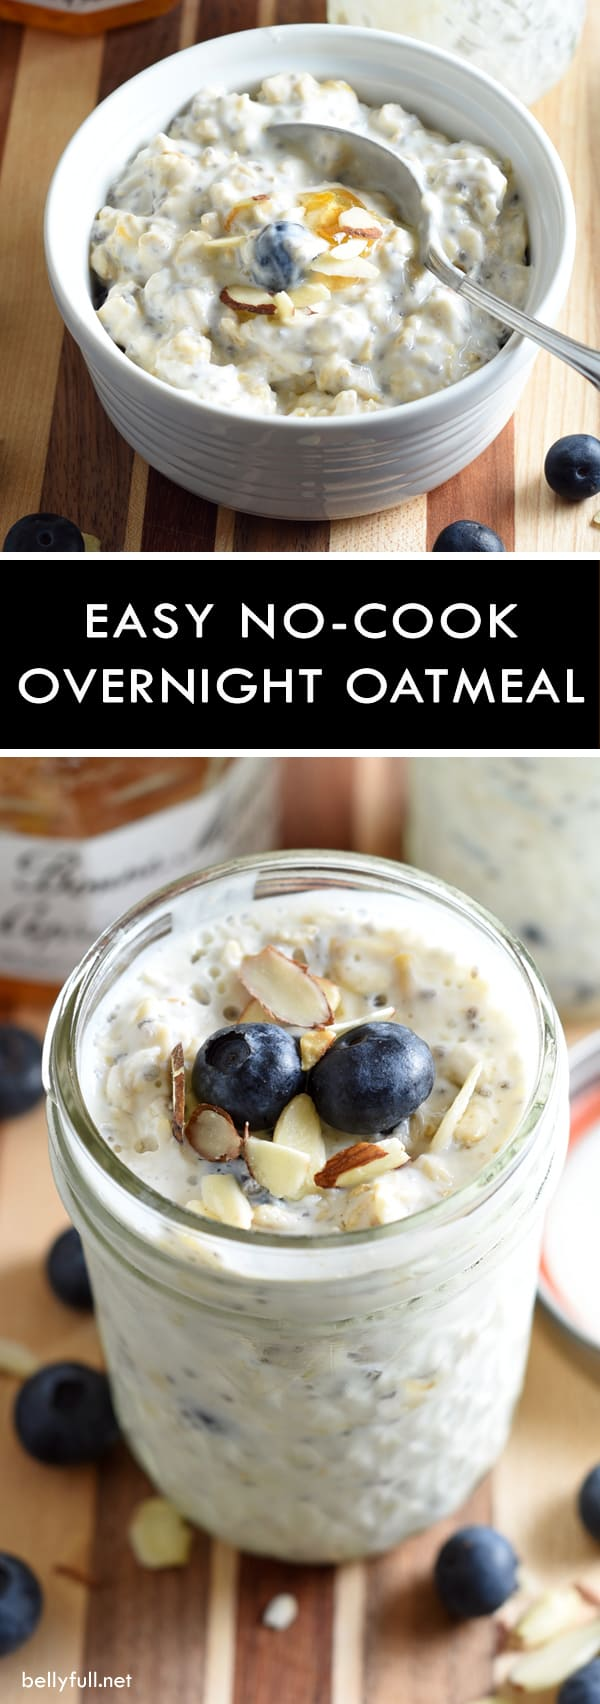 Pin for Overnight Oatmeal!